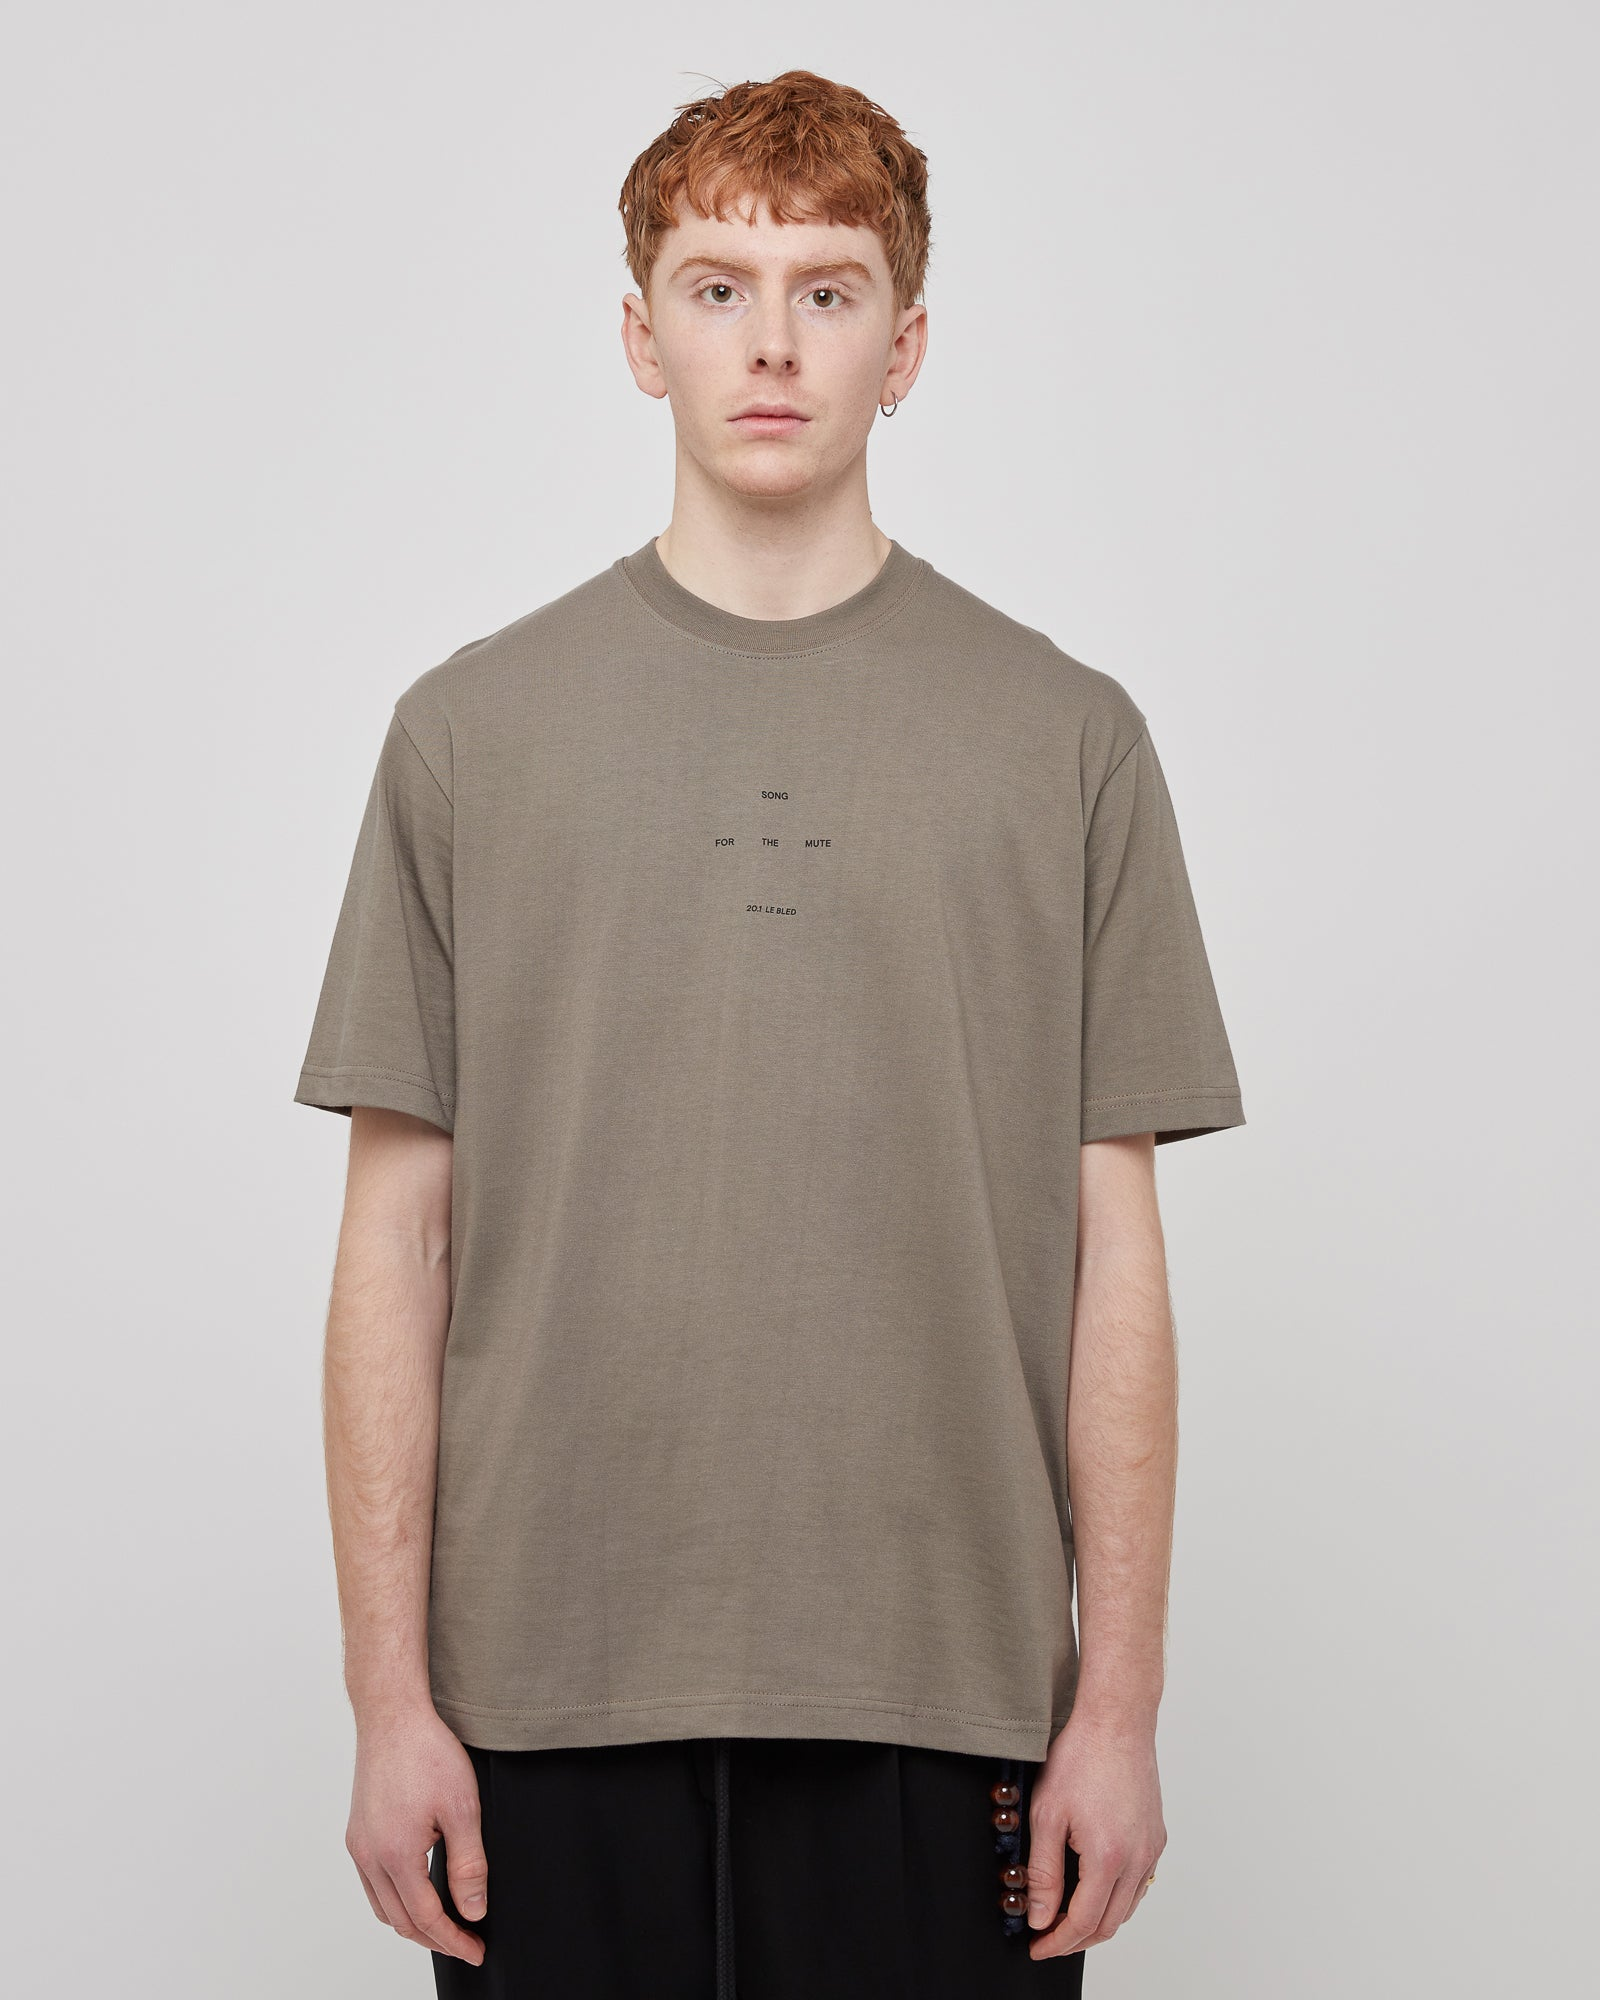 Oversized Logo T-Shirt in Cord